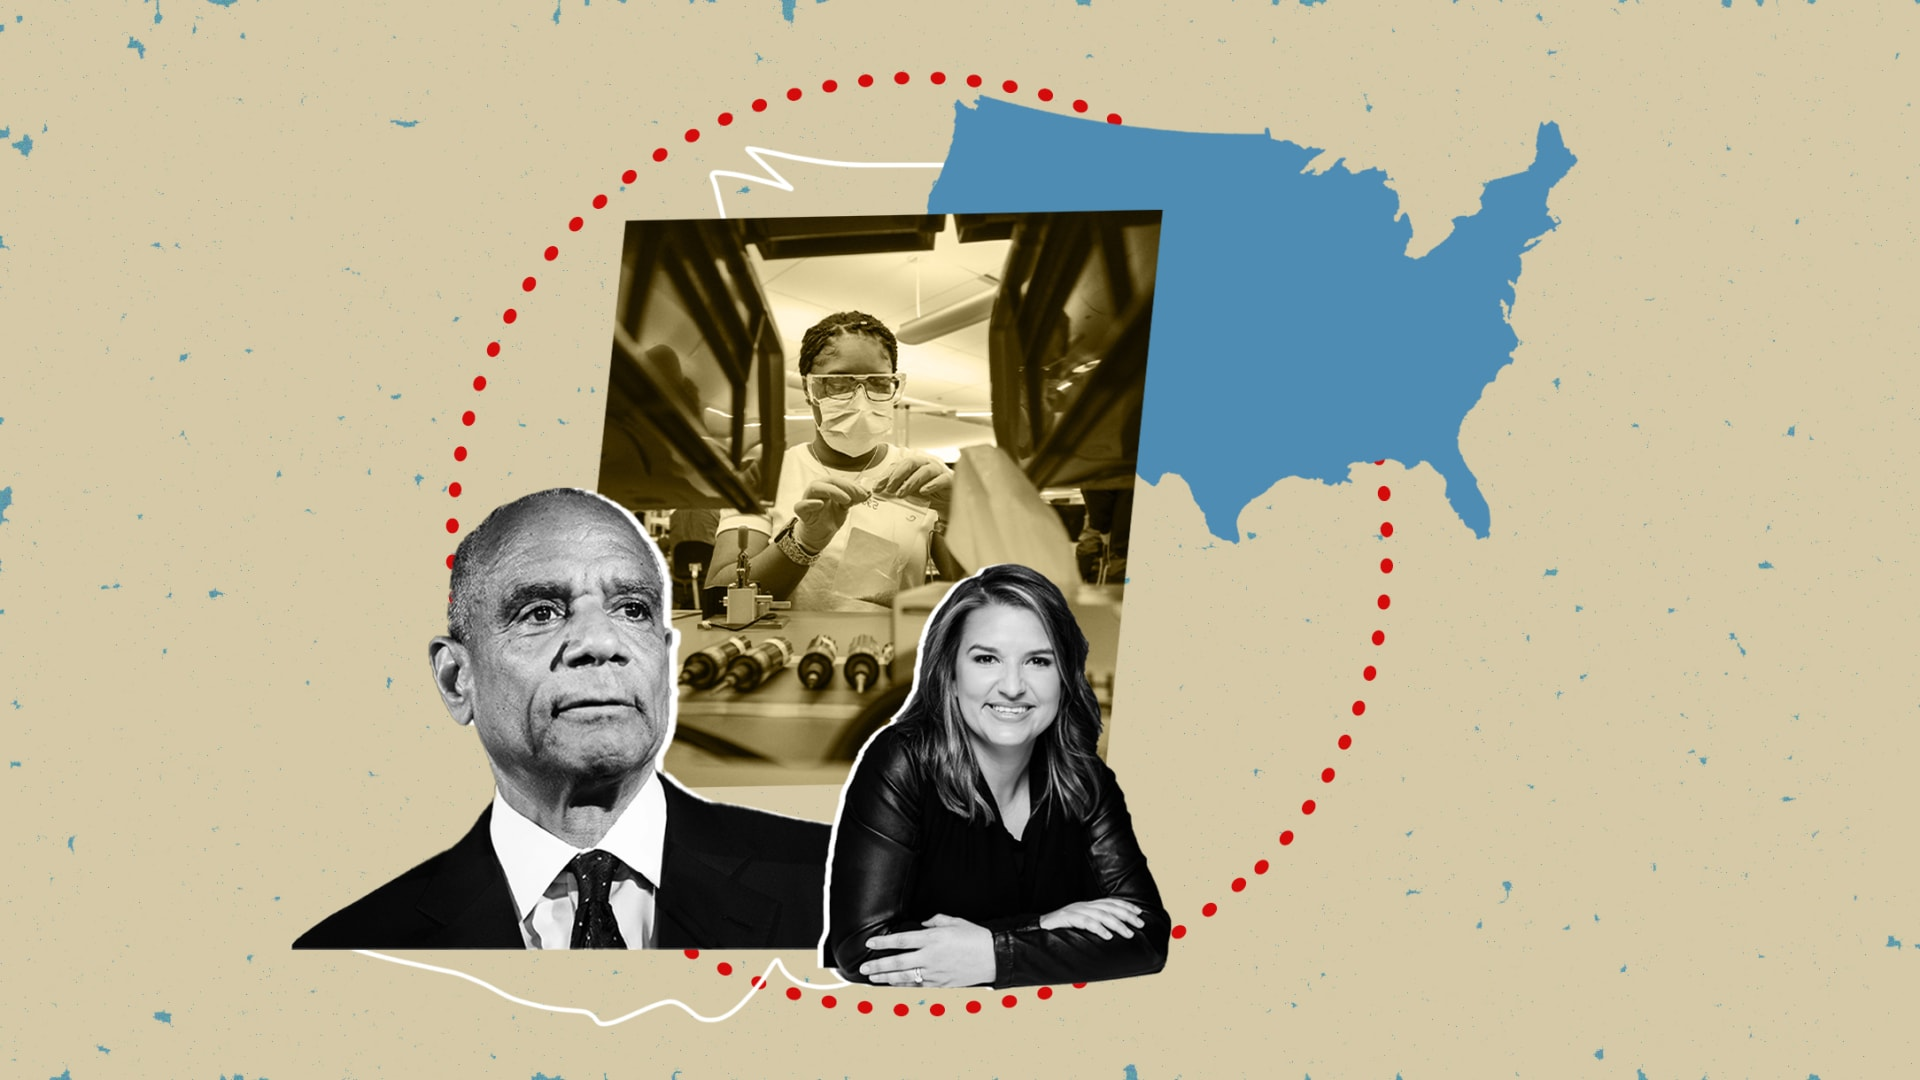 A Medium post by Ken Chenault and Rachel Romer Carlson grew into a consortium of businesses helping during the pandemic.